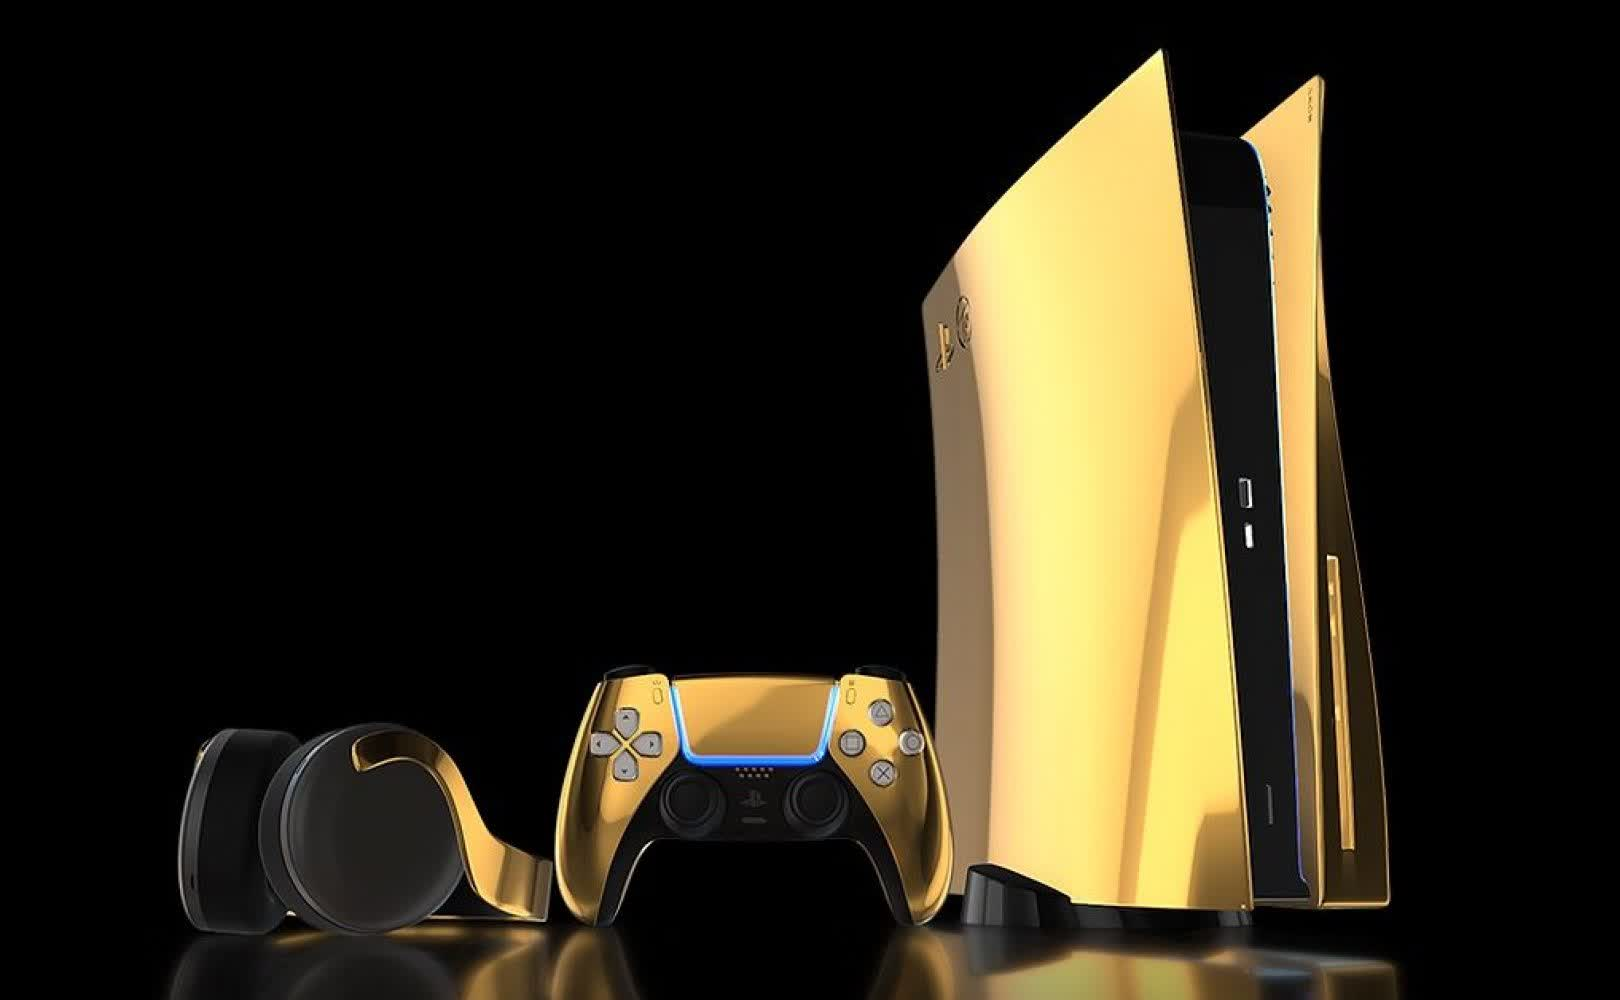 This 24K gold PlayStation 5 will set you back $10,000